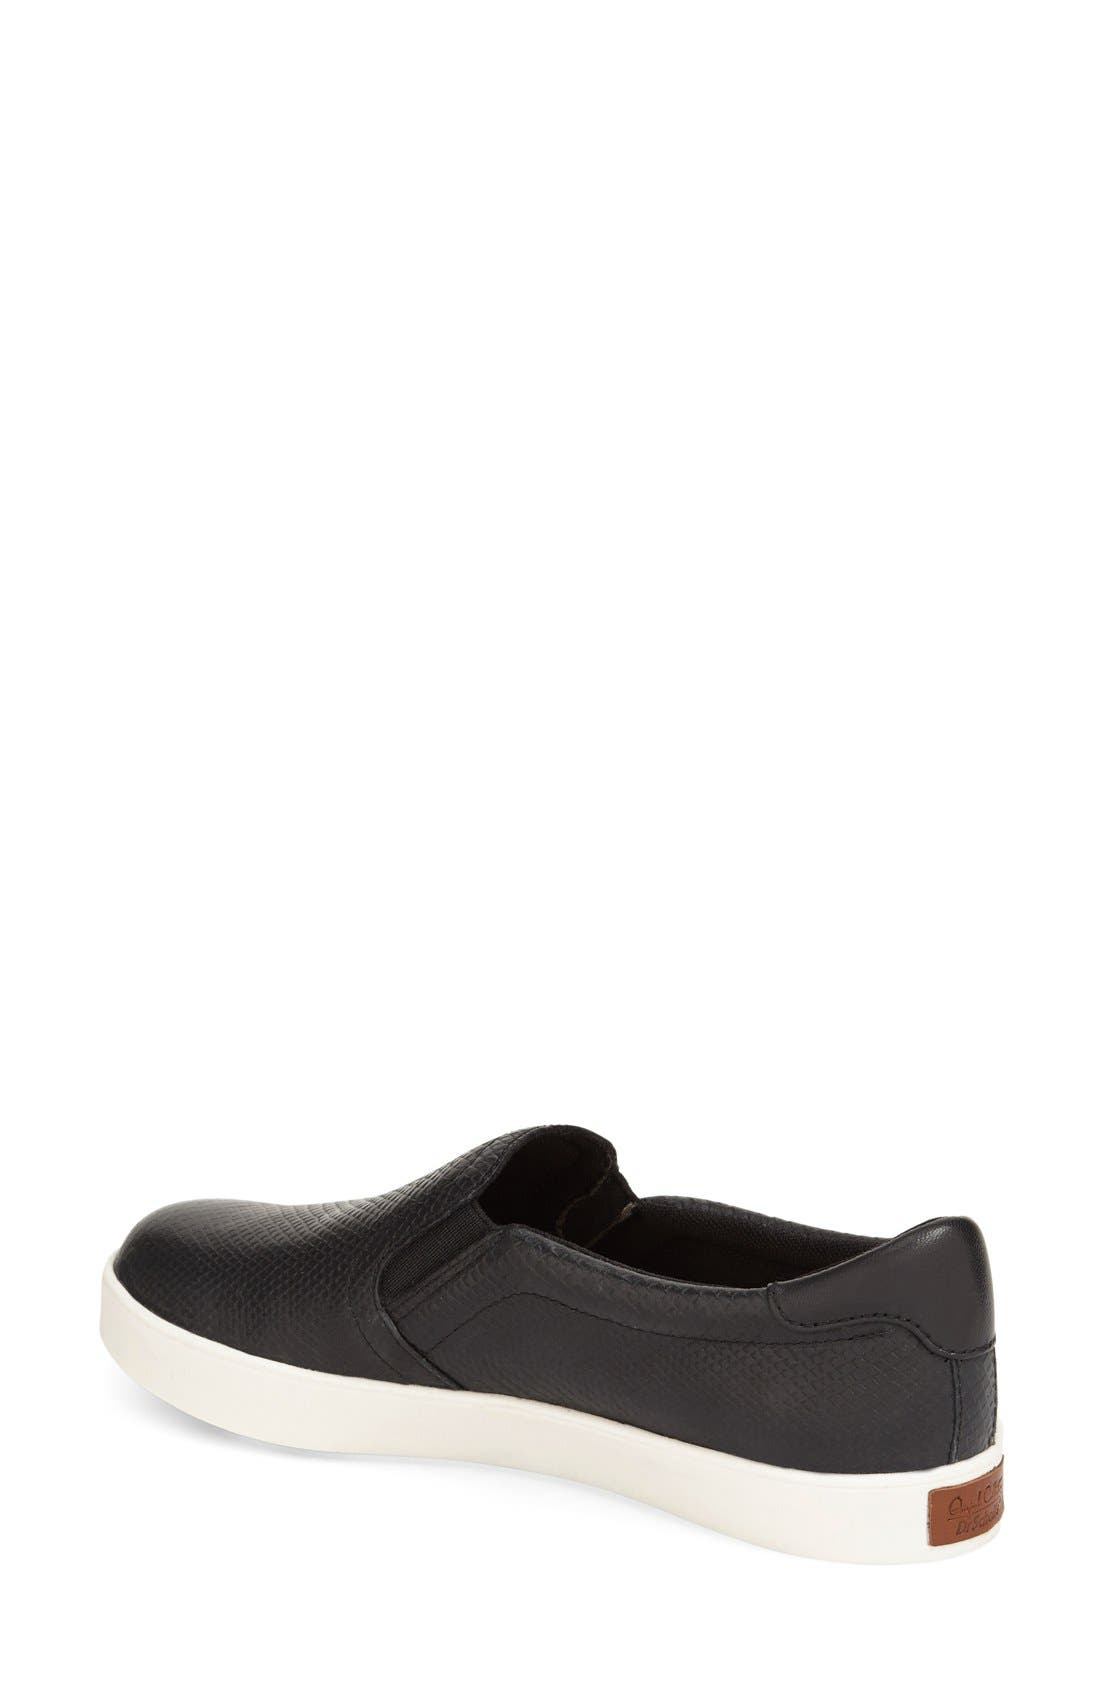 Original Collection 'Scout' Slip On Sneaker,                             Alternate thumbnail 44, color,